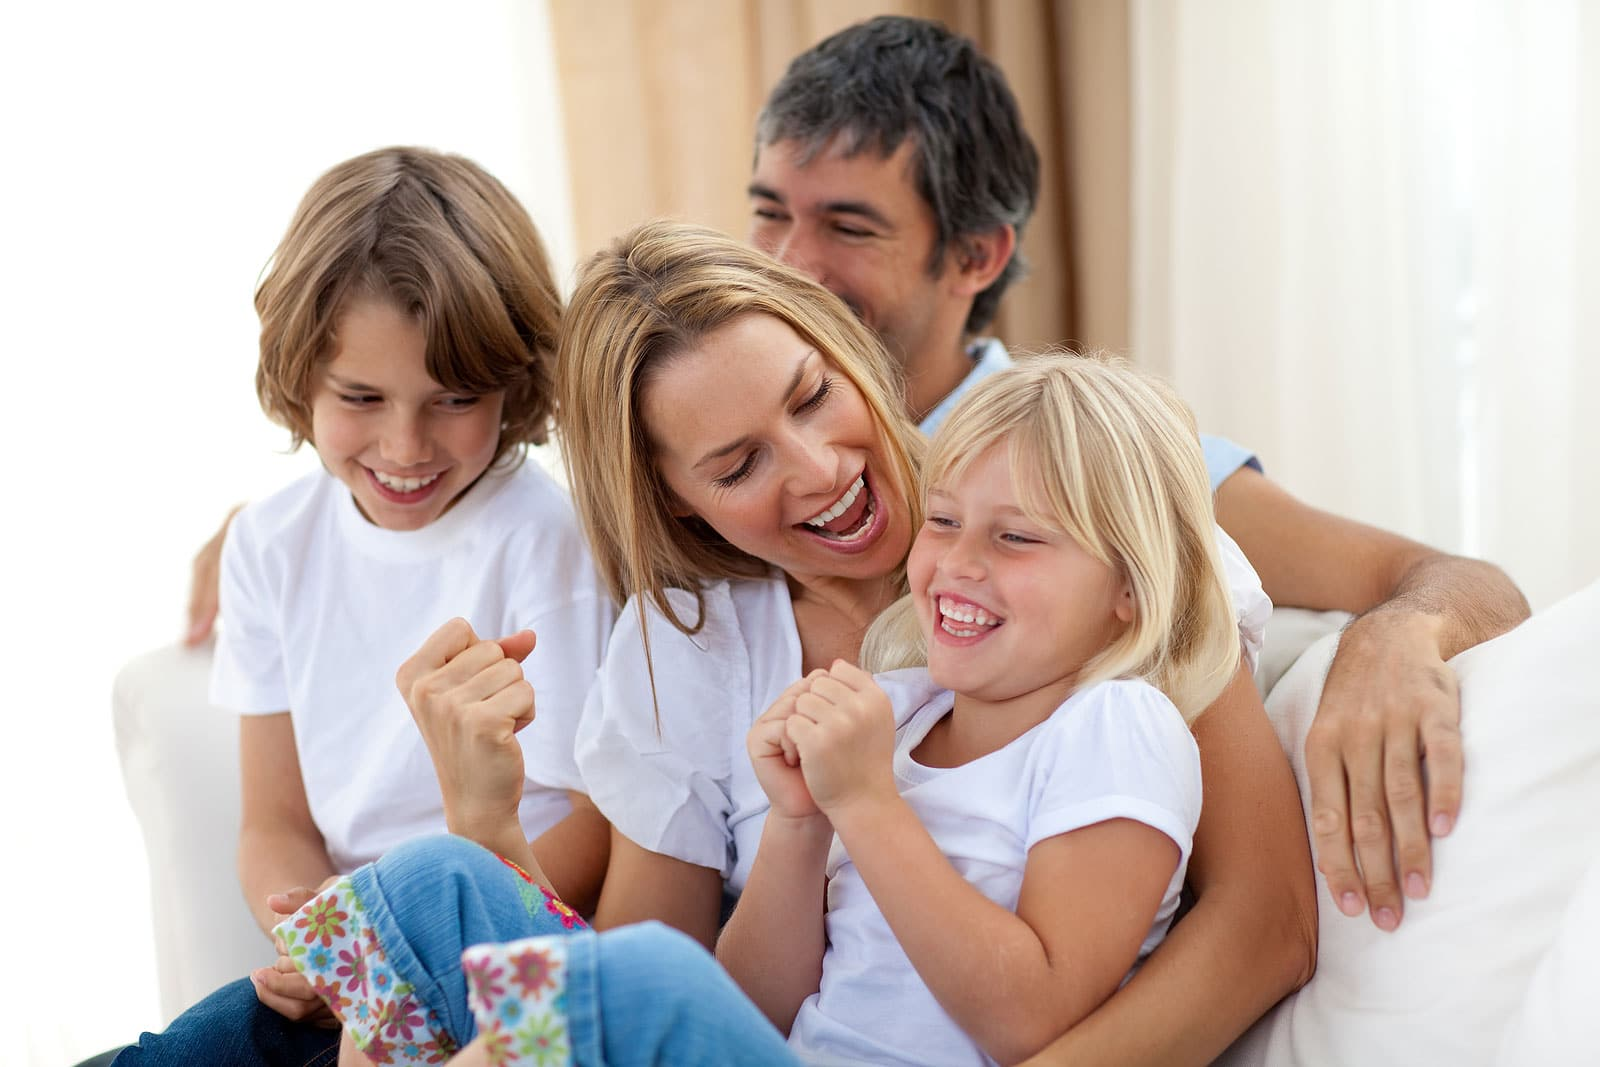 Family relations matter more than love when it comes to health